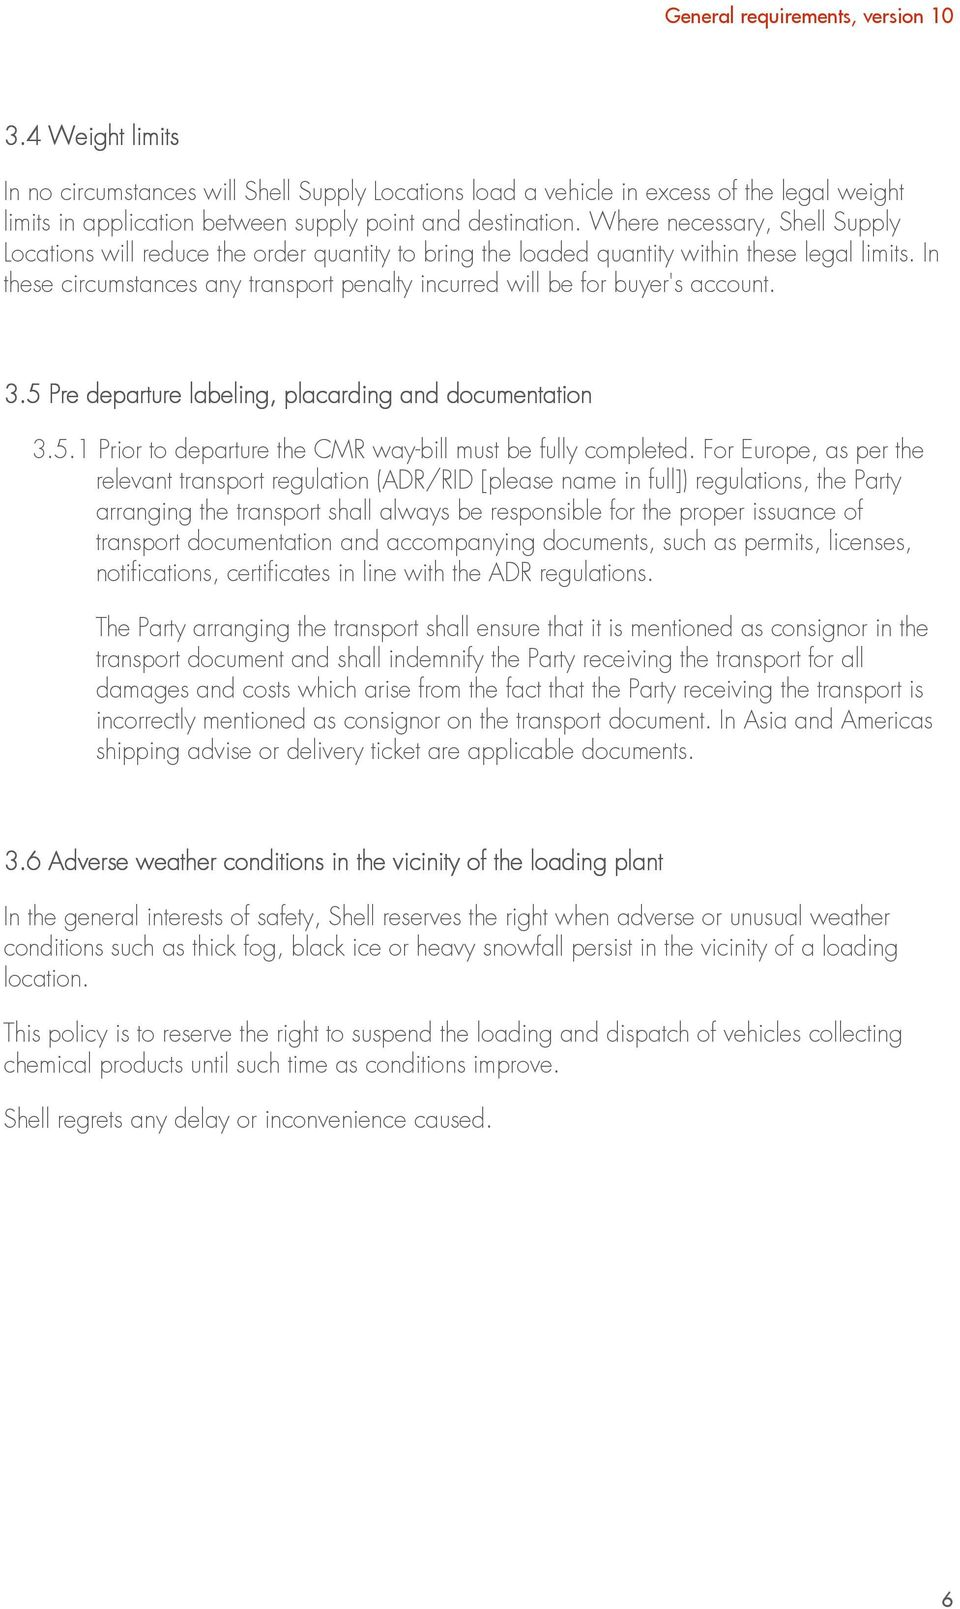 In these circumstances any transport penalty incurred will be for buyer's account. 3.5 Pre departure labeling, placarding and documentation 3.5.1 Prior to departure the CMR way-bill must be fully completed.